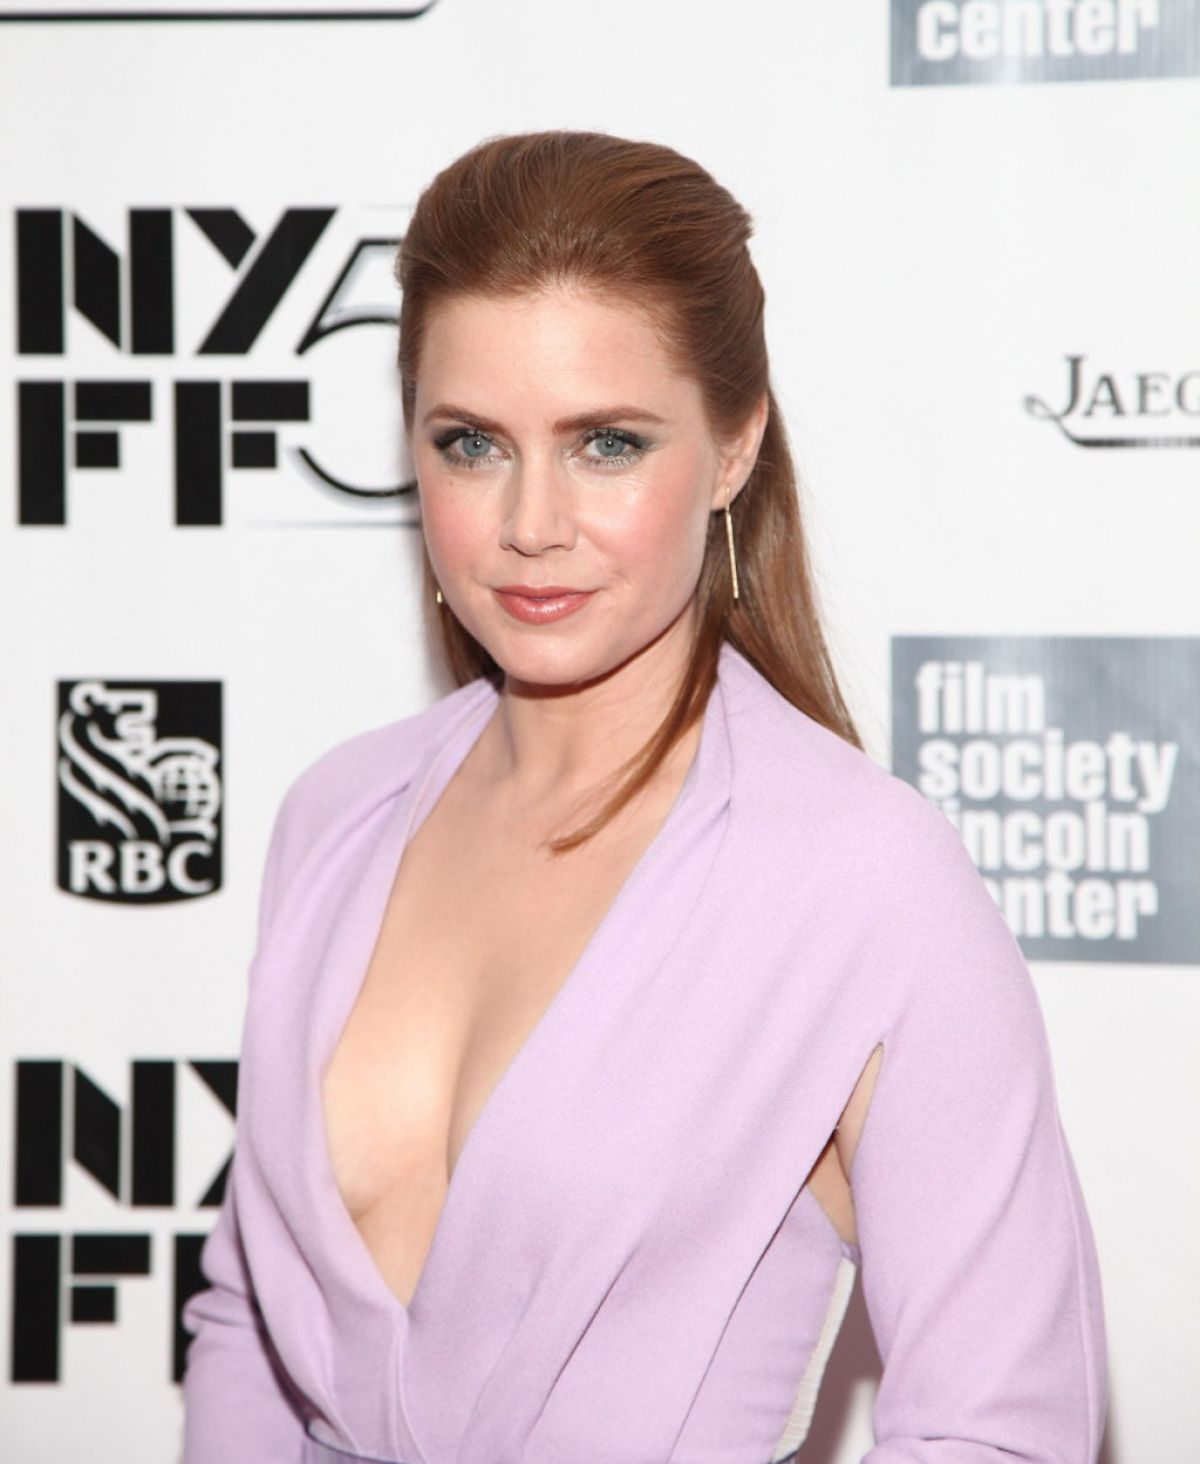 amy-adams-at-closing-night-gala-presentation-of-her-at-new-york-film-festival_5.jpg - 127.72 KB